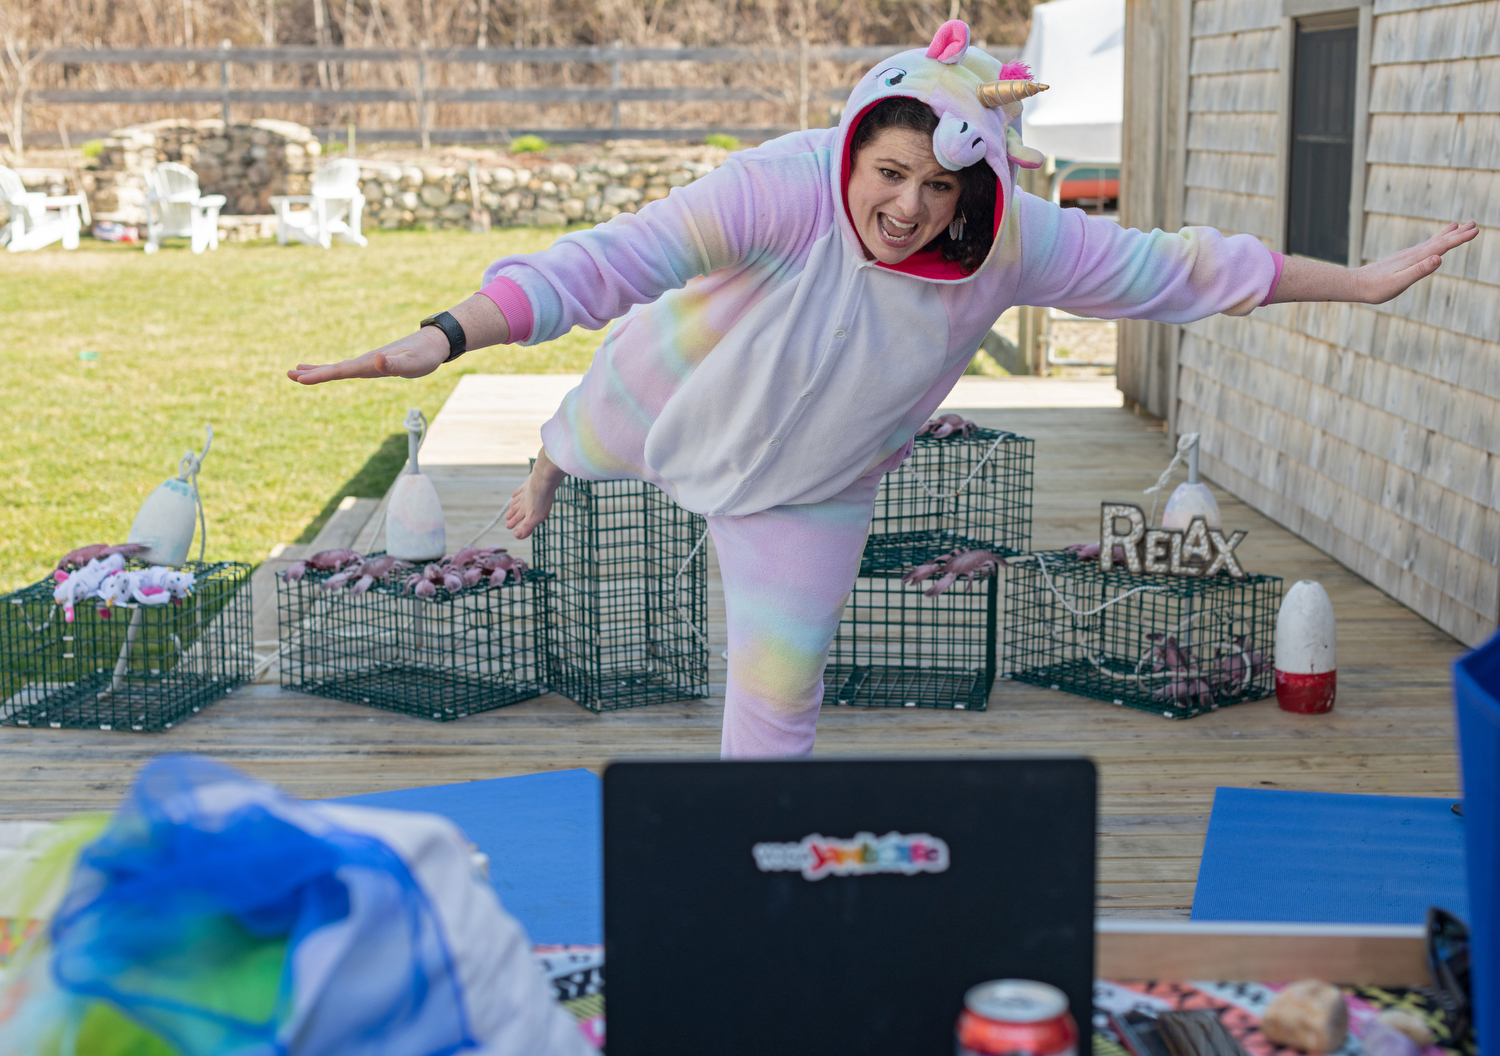 EAST SANDWICH - Britt Burbank AKA Miss Britt, owner of Kids Yoga Jamboree, started offering free live yoga classes for kids via Facebook. Not only does she dress up in various festive onesies but she makes kids and parents laugh out loud with her vibrant personality.